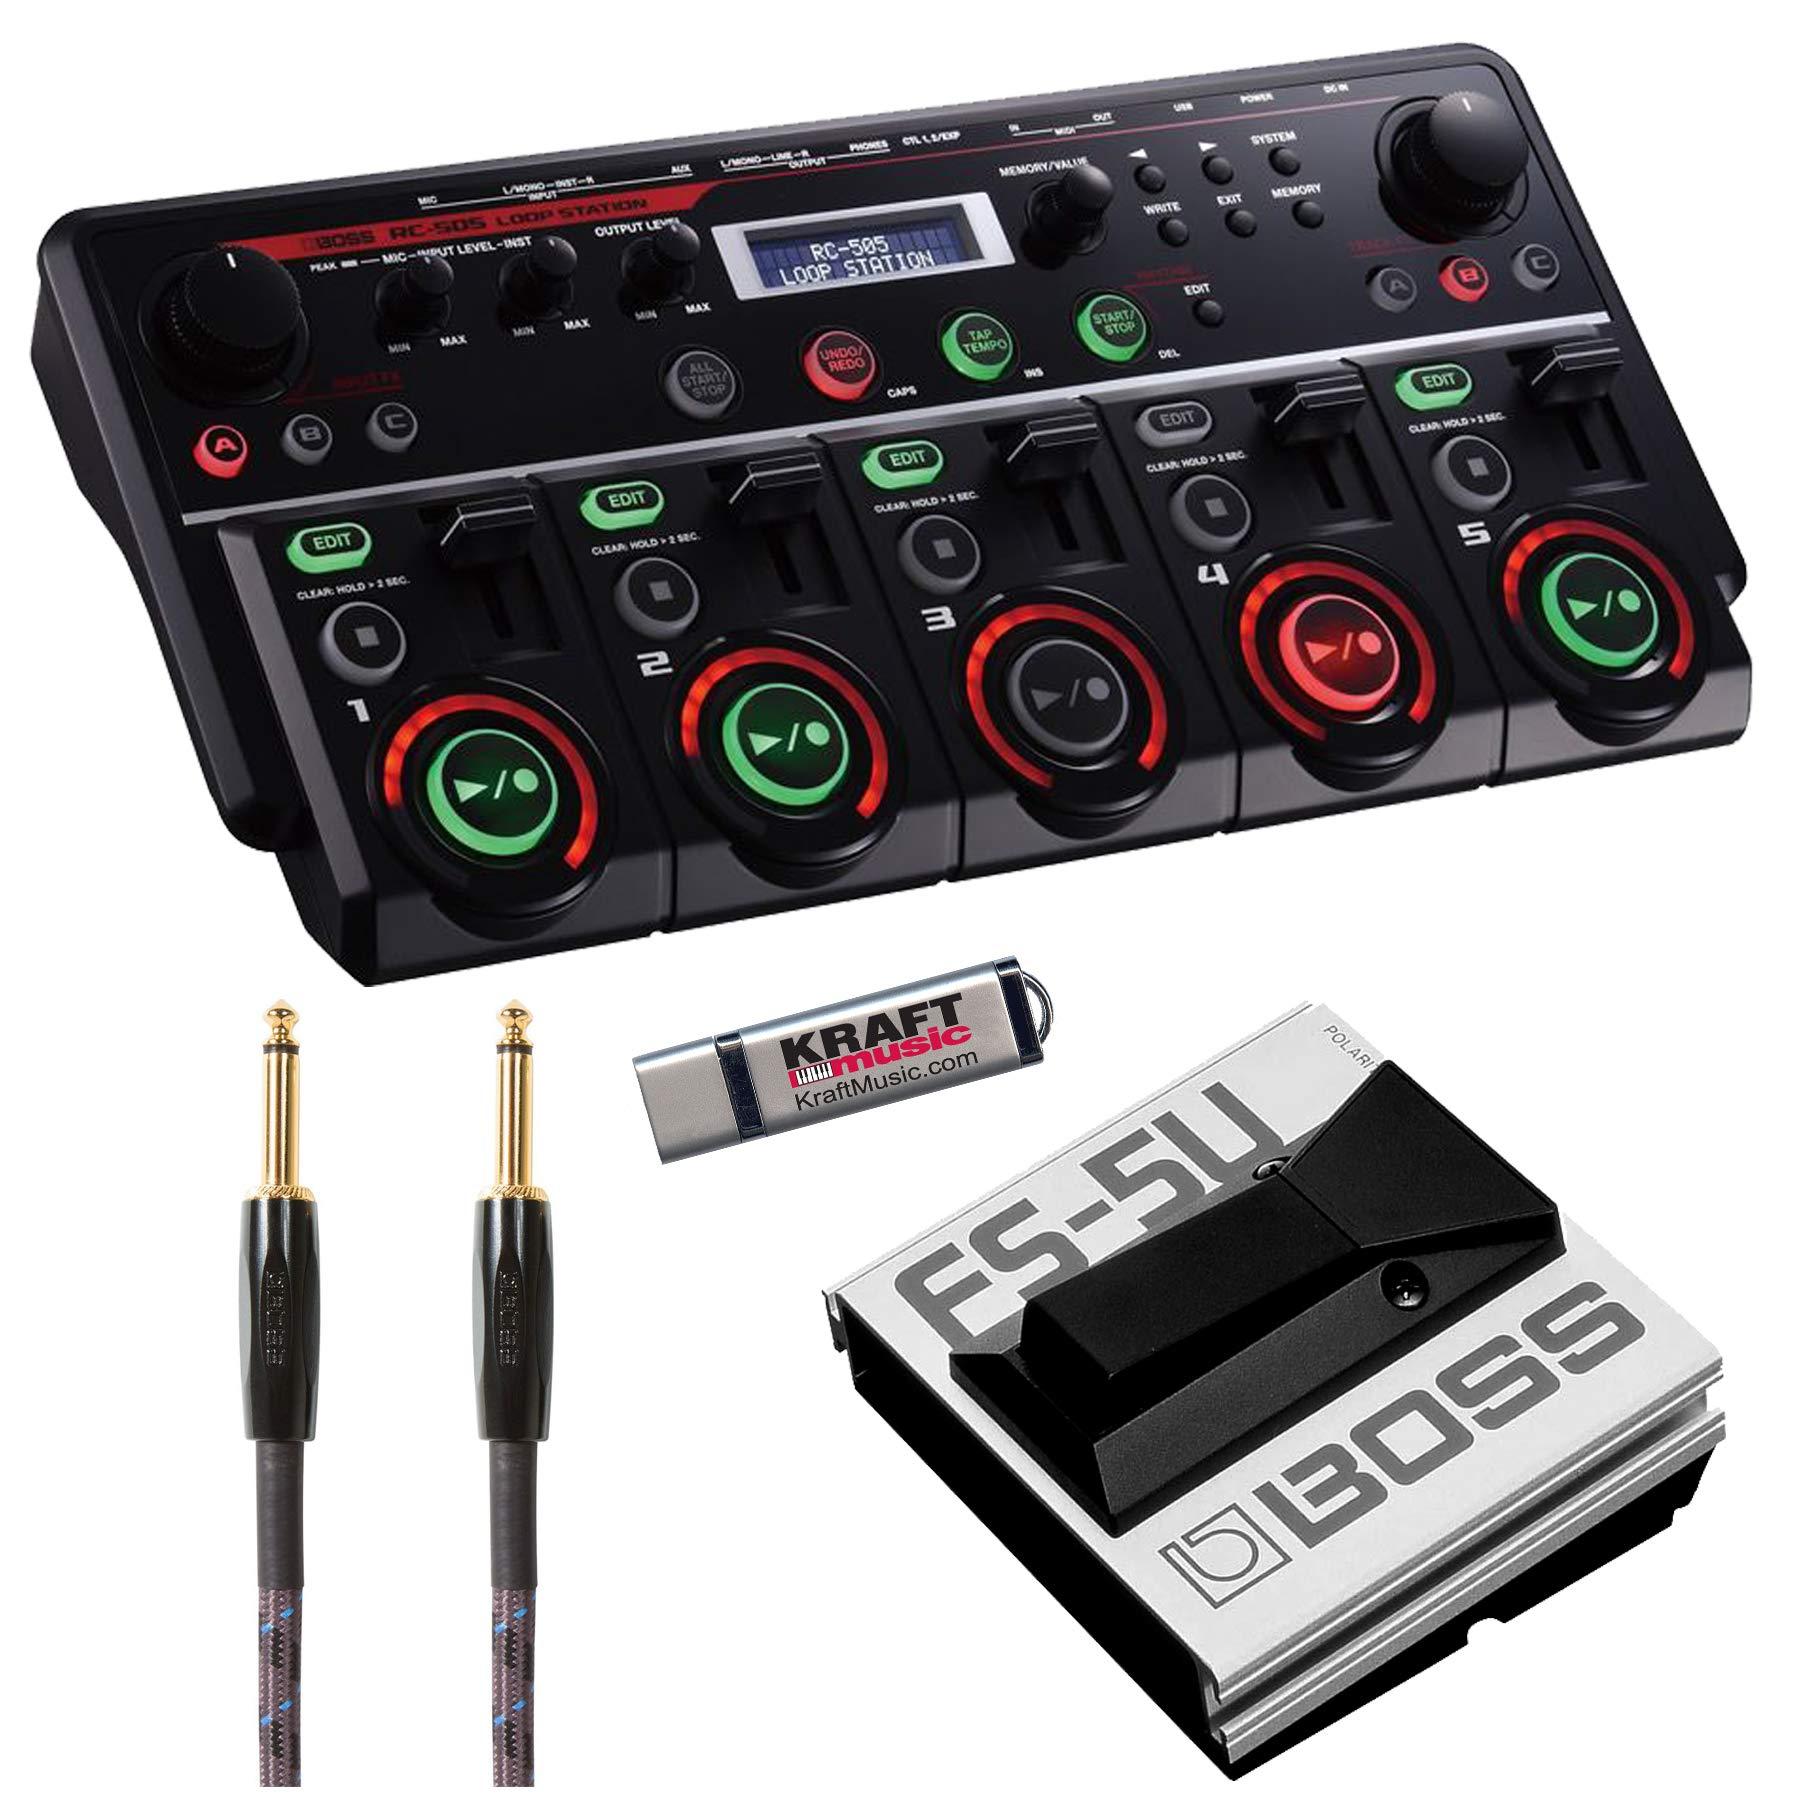 BOSS RC505 Loopstation with FS5U Footswitch, Cable, and Flash drive by BOSS